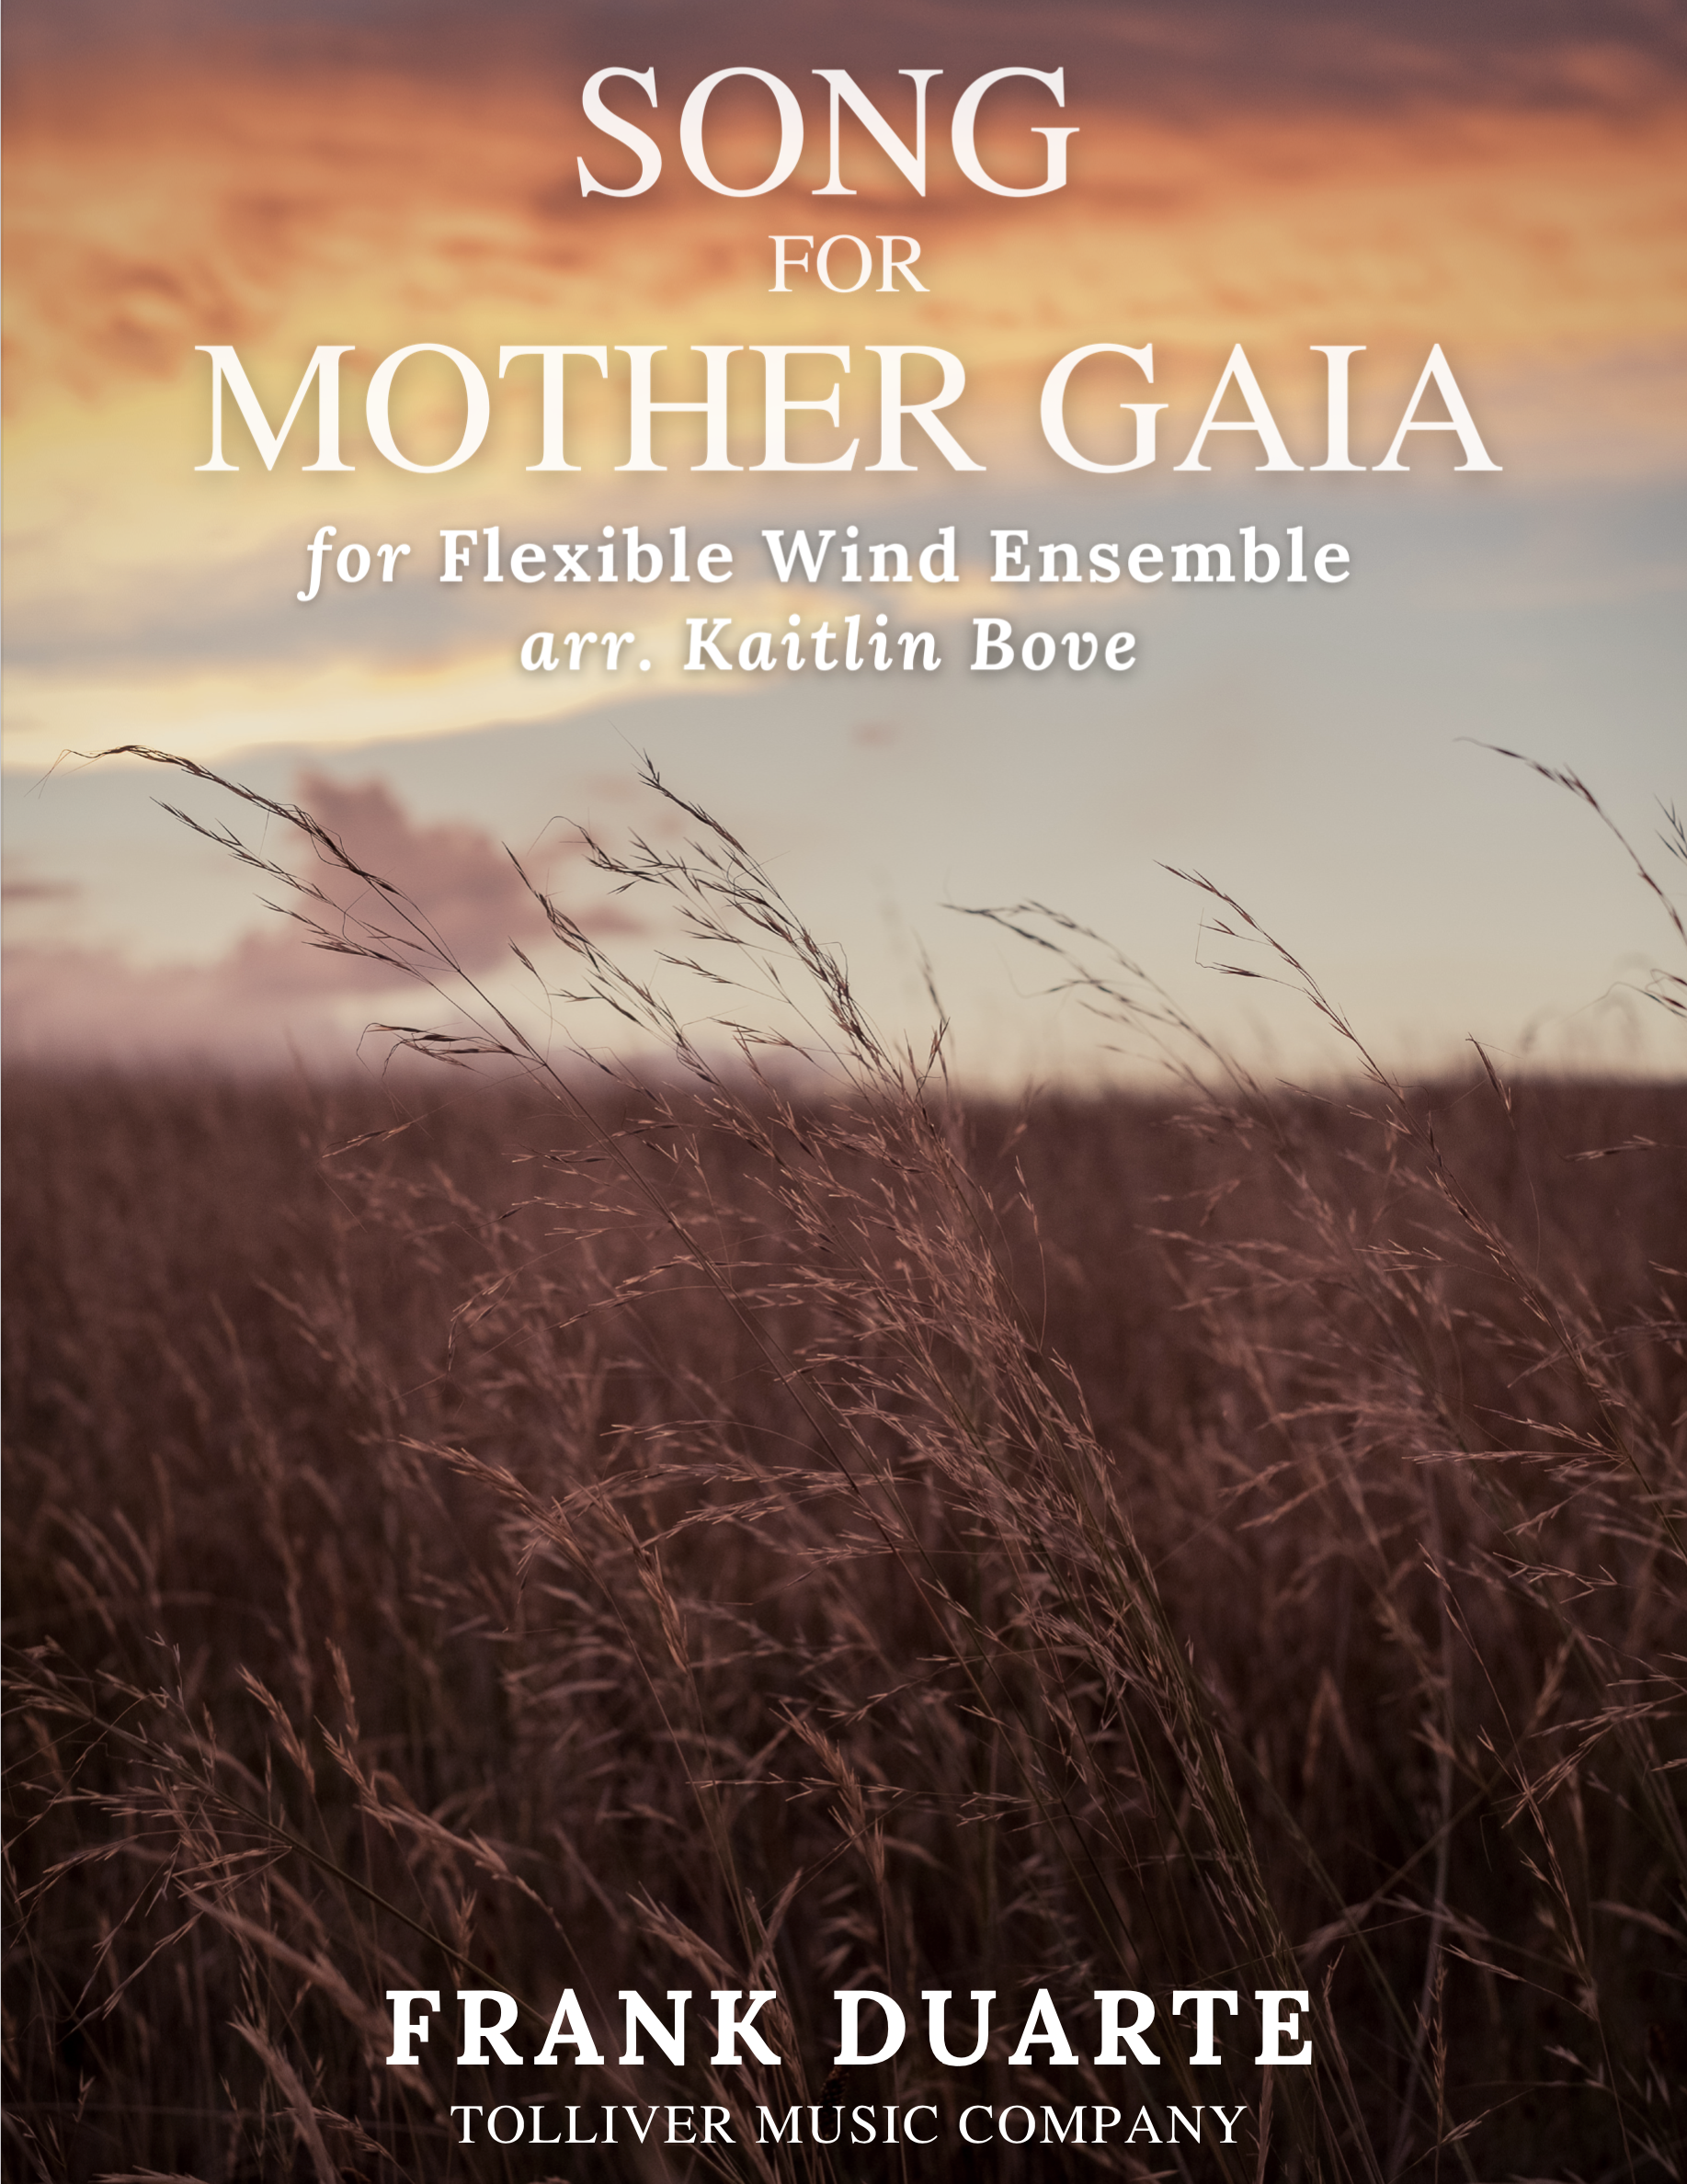 Song For Mother Gaia by Frank Duarte arr. Bovve